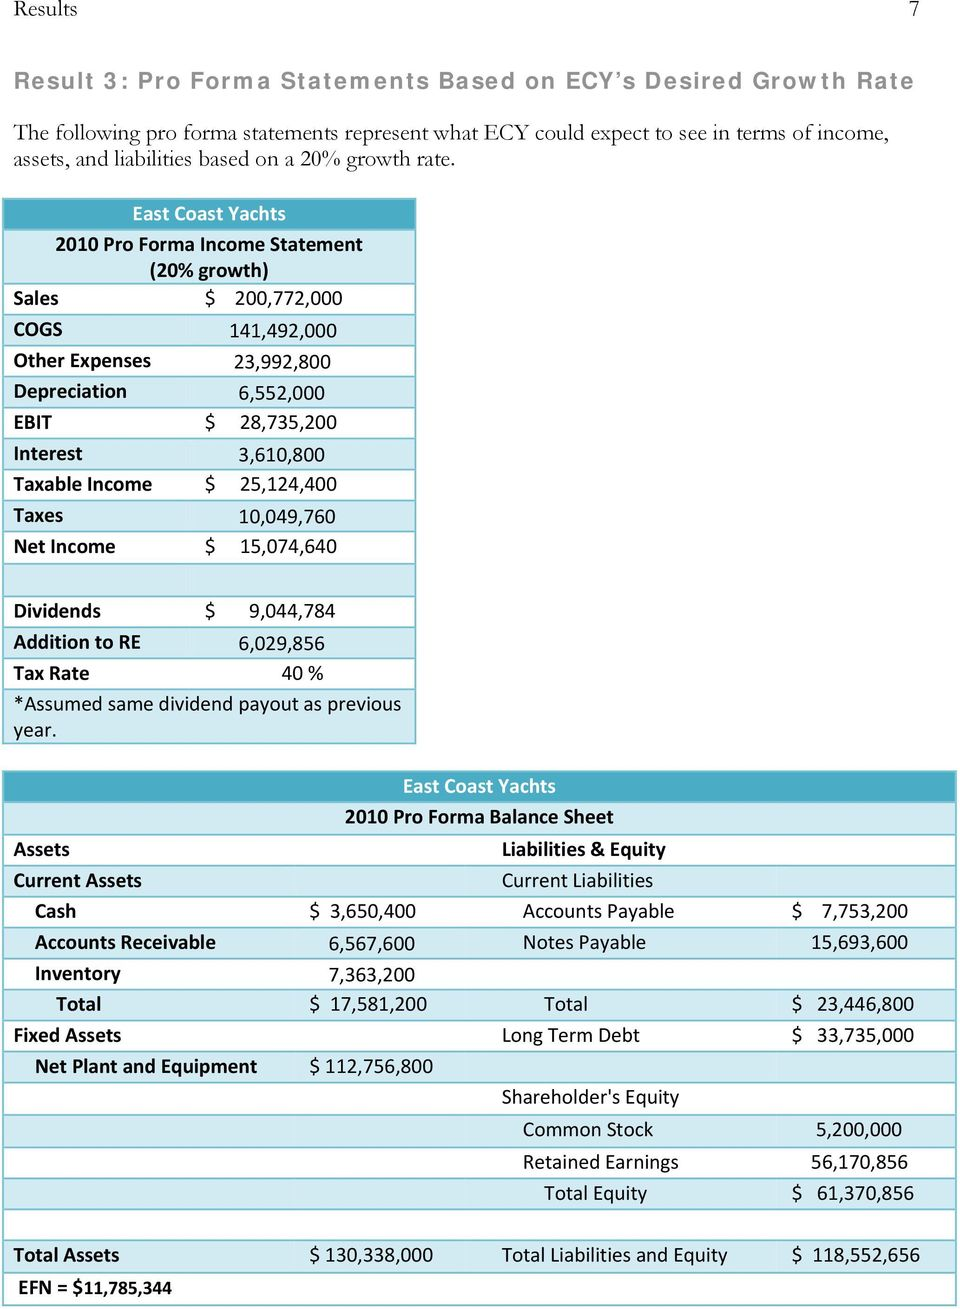 East Coast Yachts 2010 Pro Forma Income Statement (20% growth) Sales $ 200,772,000 COGS 141,492,000 Other Expenses 23,992,800 Depreciation 6,552,000 EBIT $ 28,735,200 Interest 3,610,800 Taxable